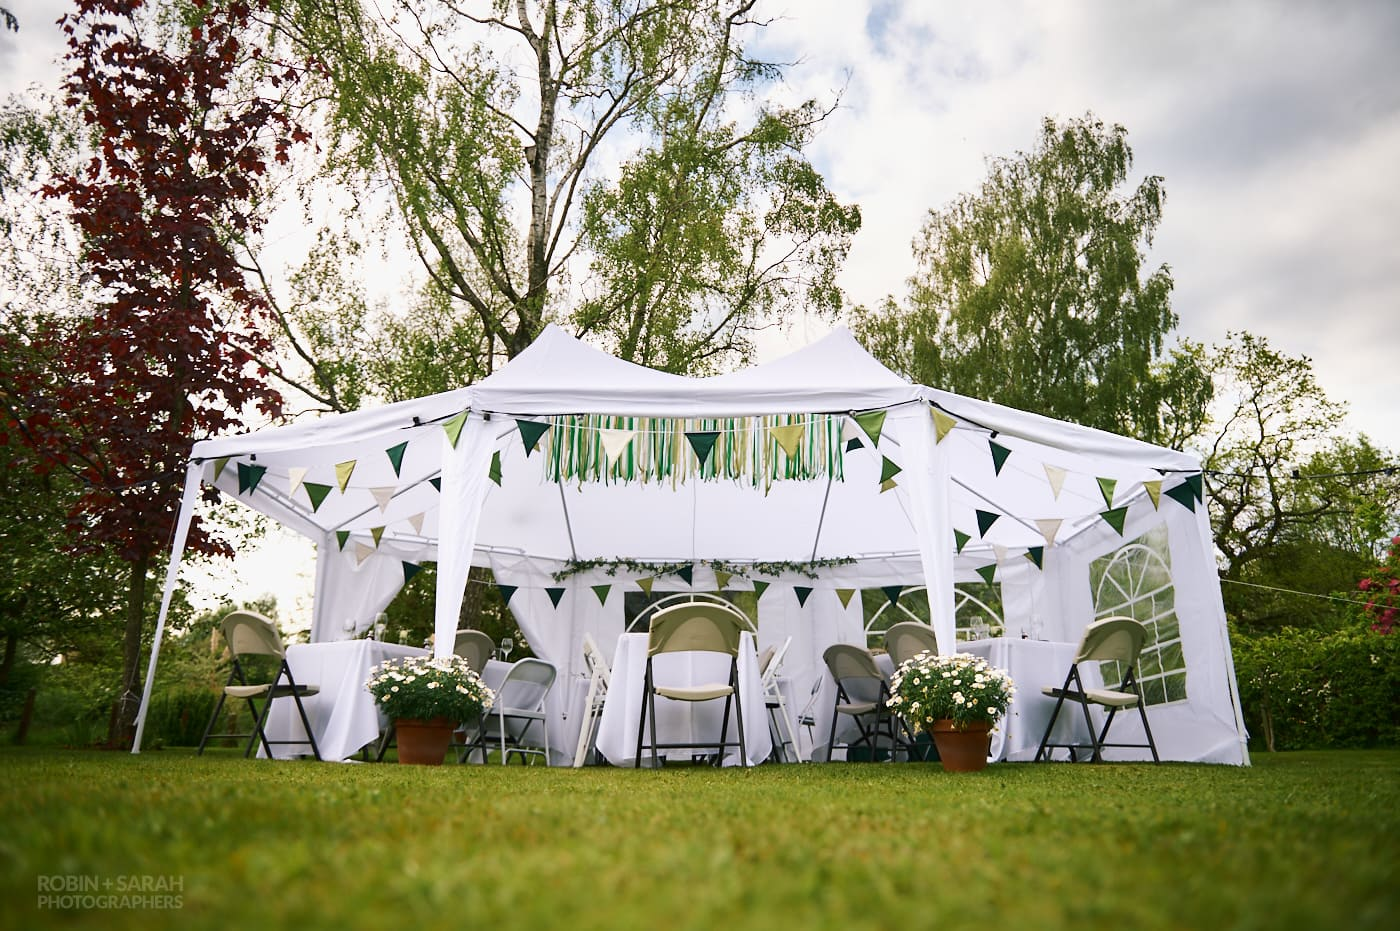 Small marquee set up for home garden wedding with green bunting